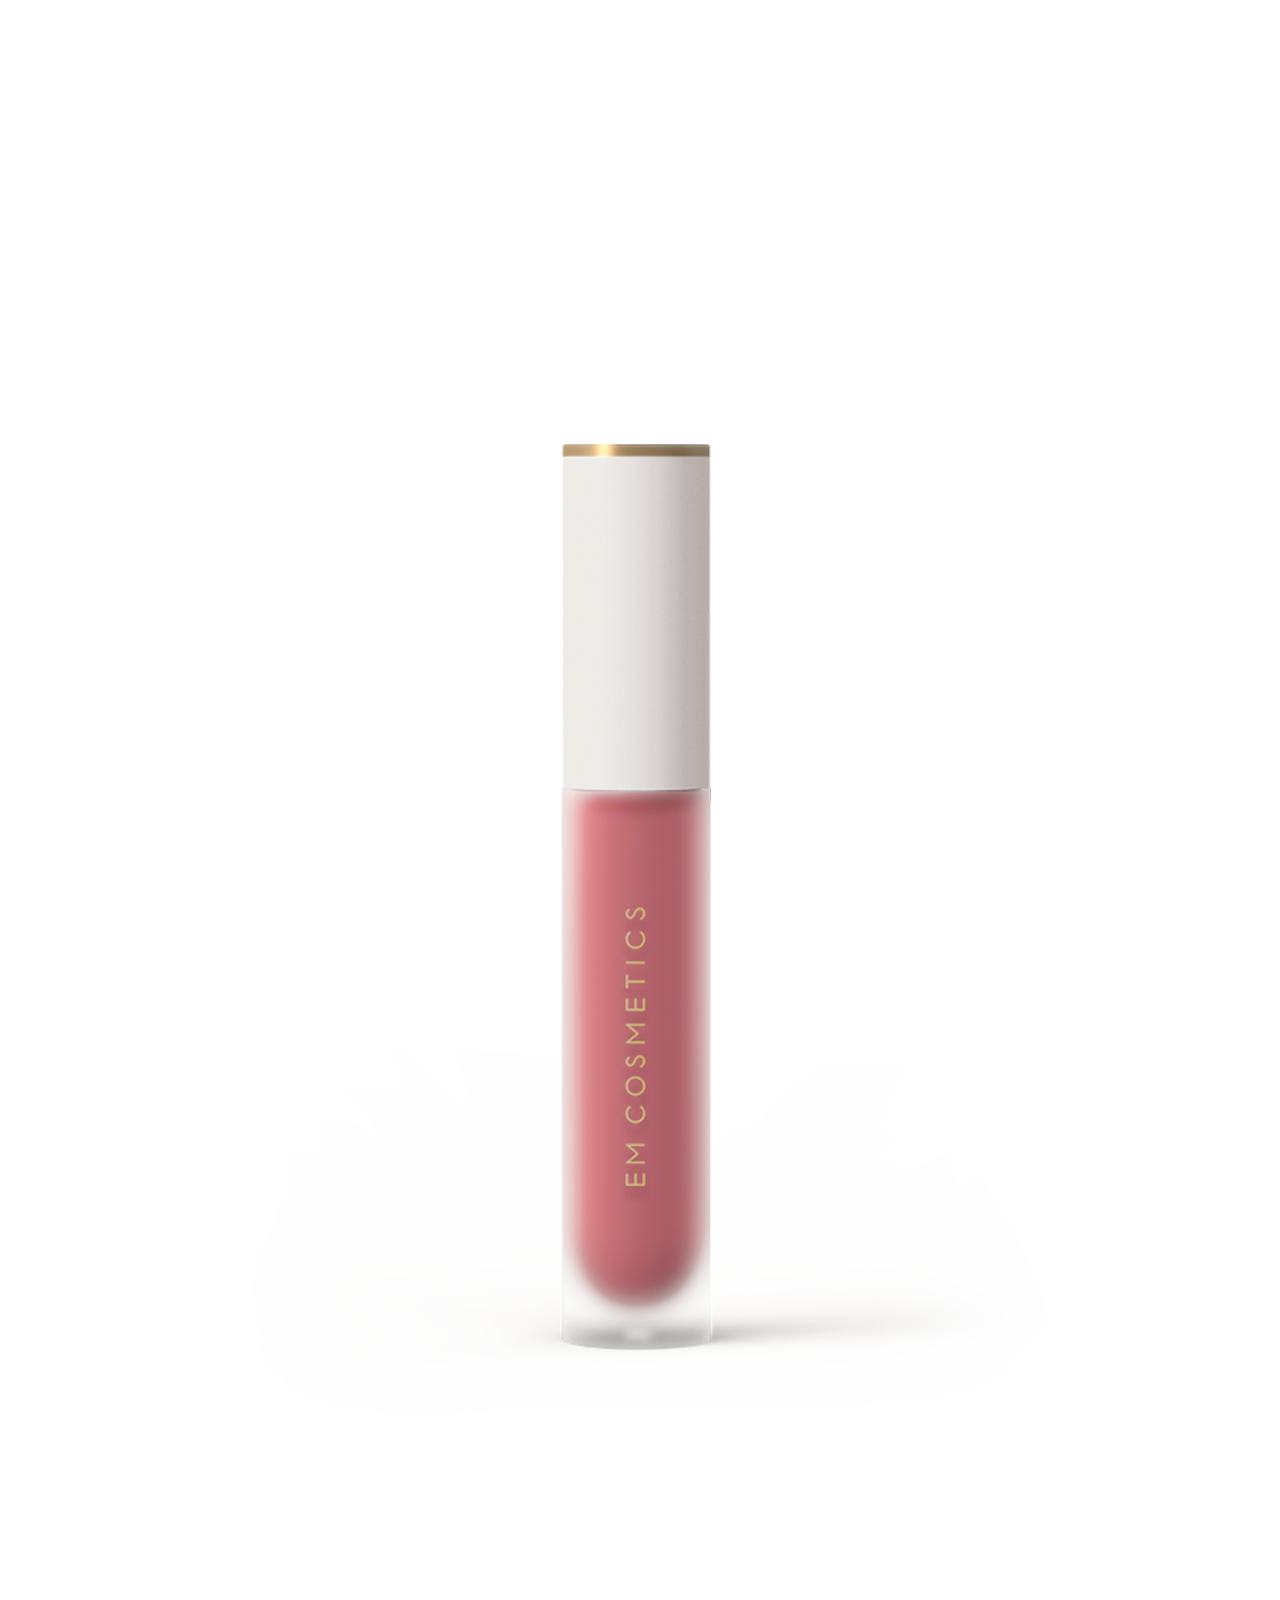 tender-rose-true-gloss-lip-closed